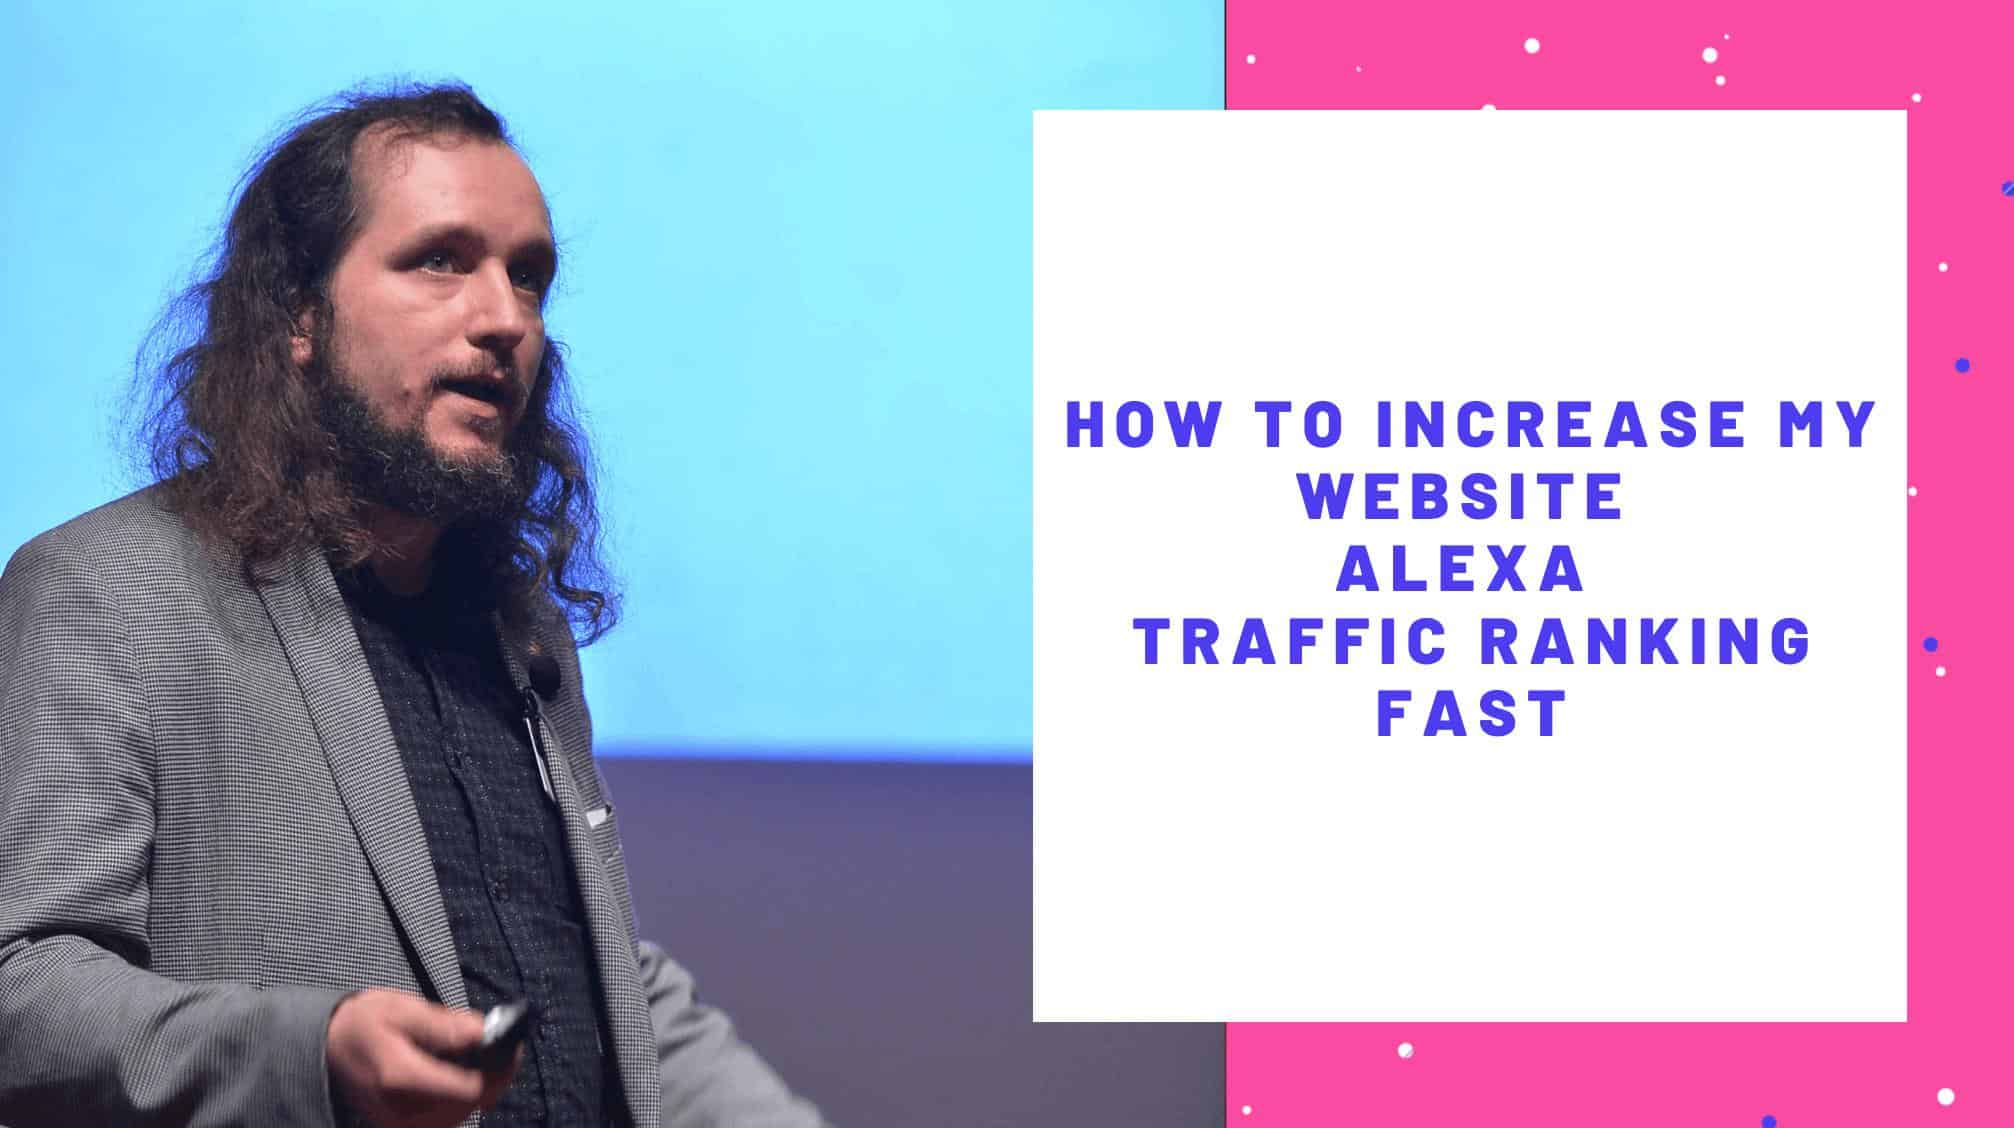 How to Increase My Website Alexa Traffic Ranking Fast